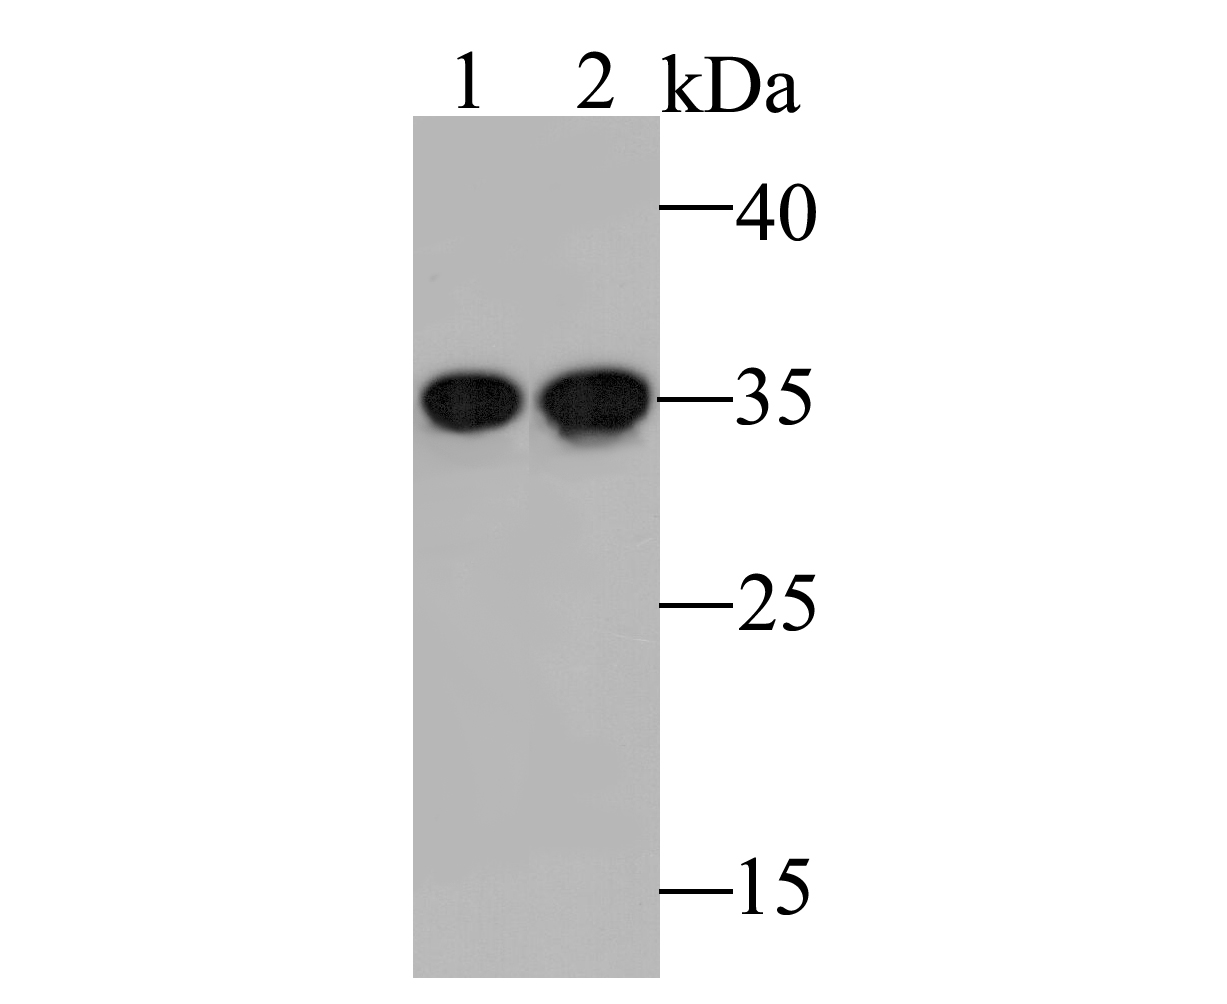 Western blot analysis of PSMD14 on different lysates. Proteins were transferred to a PVDF membrane and blocked with 5% BSA in PBS for 1 hour at room temperature. The primary antibody (ET7109-85, 1/500) was used in 5% BSA at room temperature for 2 hours. Goat Anti-Rabbit IgG - HRP Secondary Antibody (HA1001) at 1:5,000 dilution was used for 1 hour at room temperature.<br /> Positive control: <br /> Lane 1: Human skin tissue lysate<br /> Lane 2: Rat bone marrow lysate